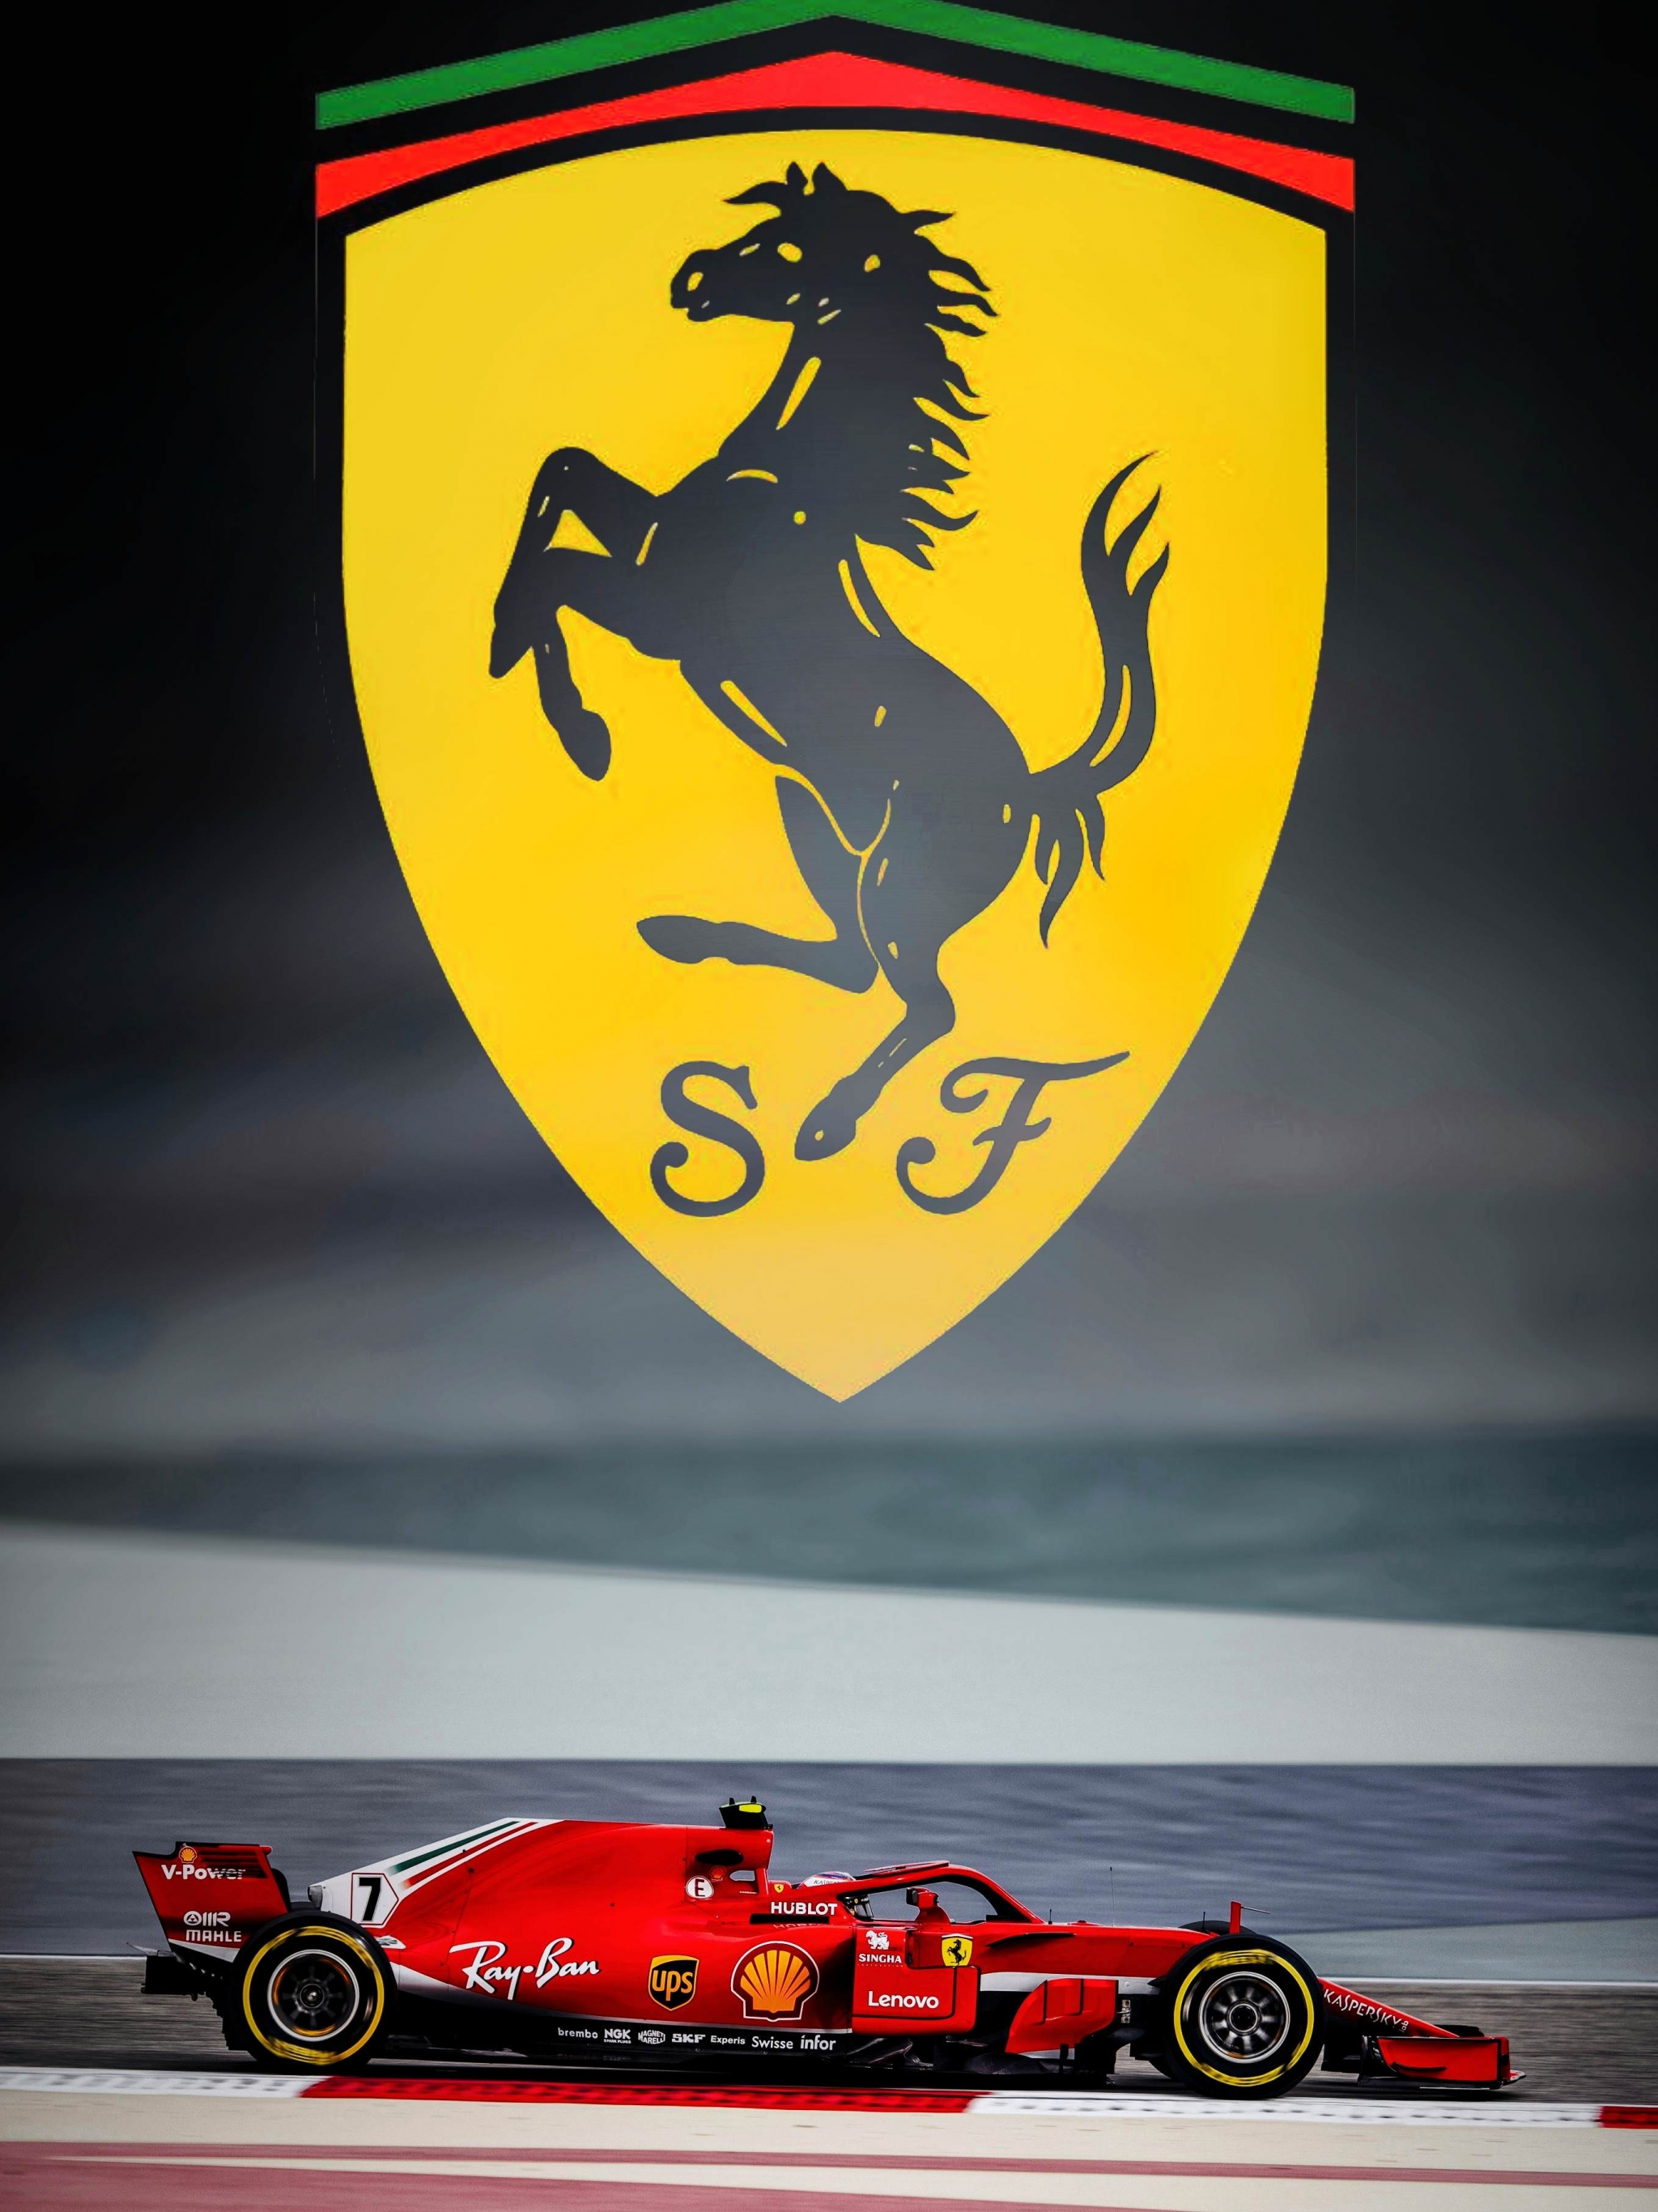 Scuderia Ferrari Kimi Rikknen Mobile Wallpaper Imgur 2048x2732 Download Hd Wallpaper Wallpapertip